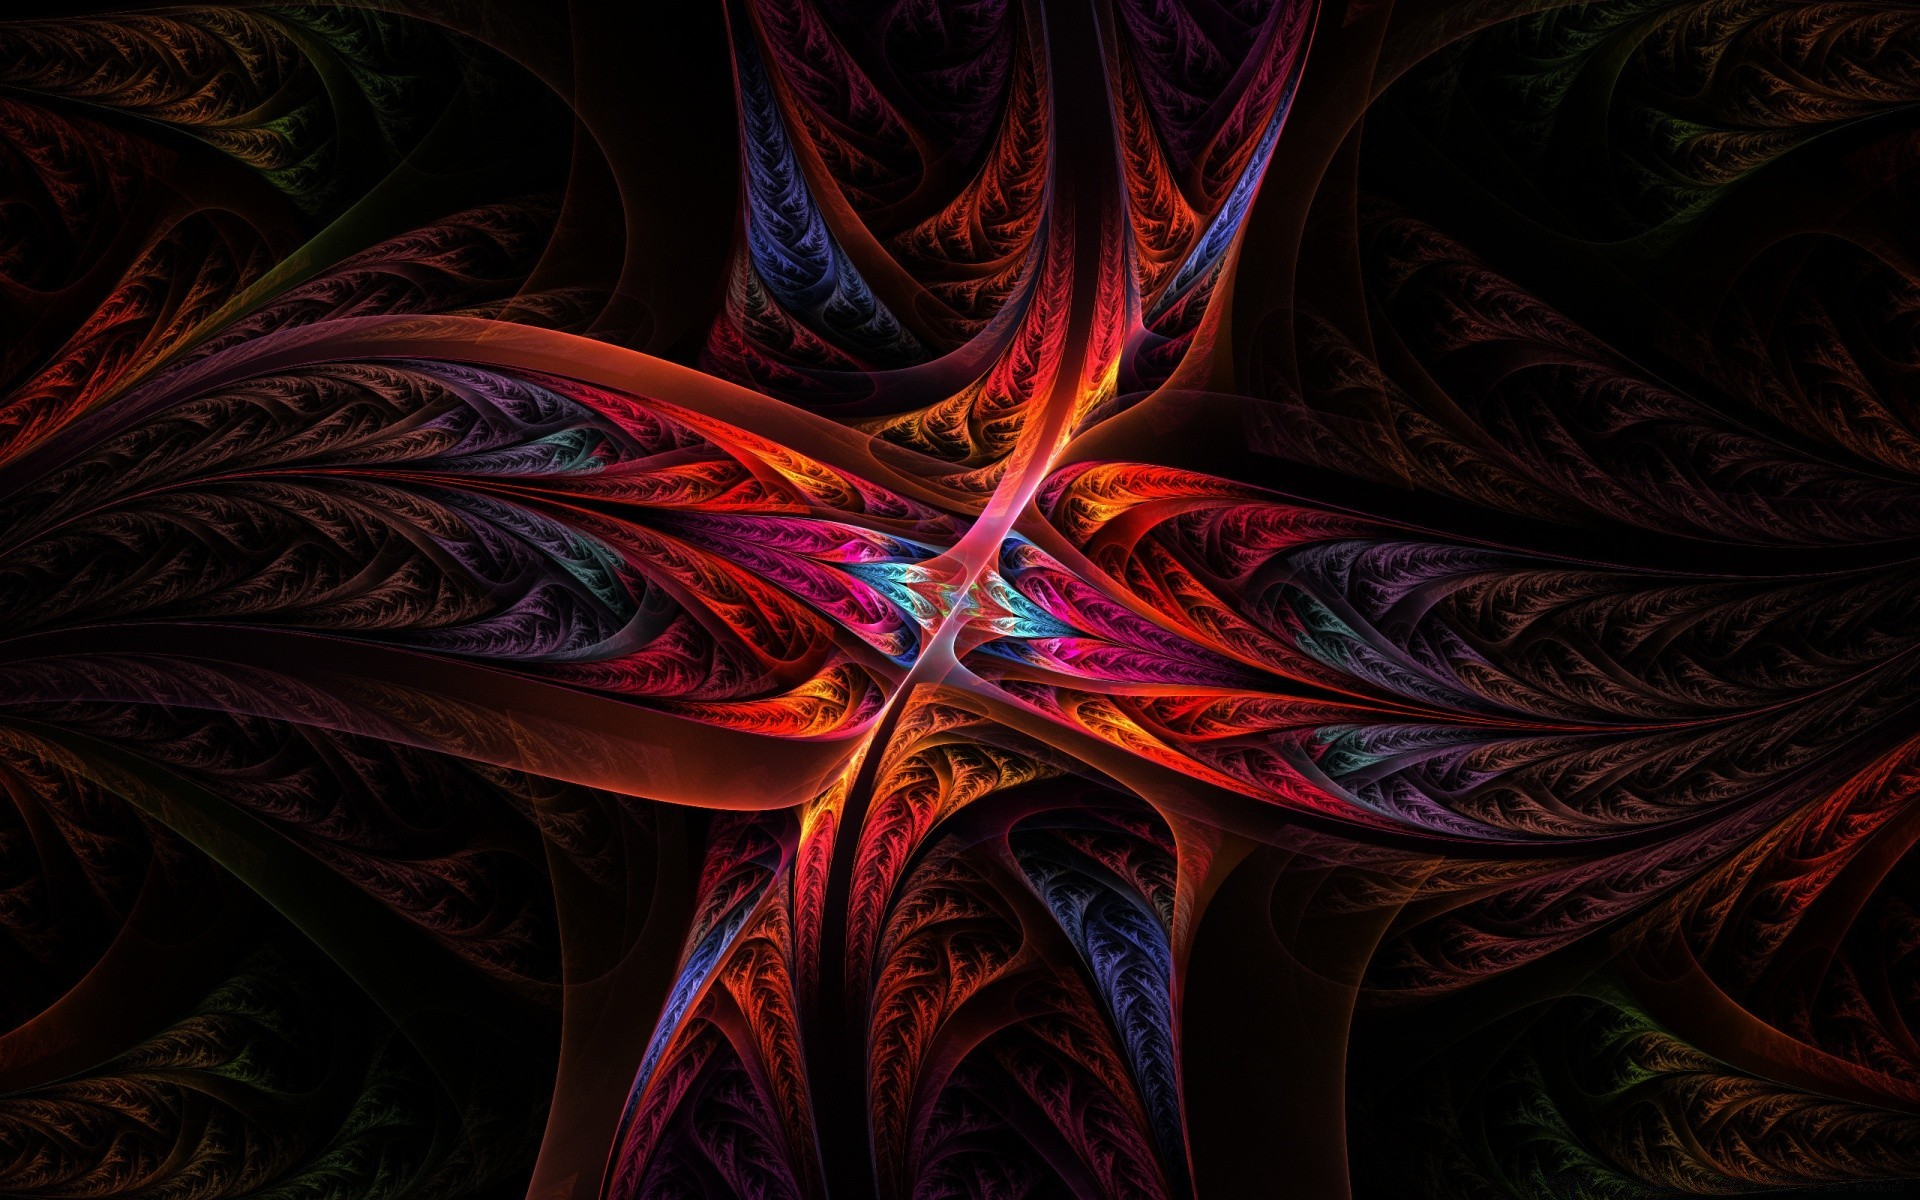 colorful fractals. iphone wallpapers for free.